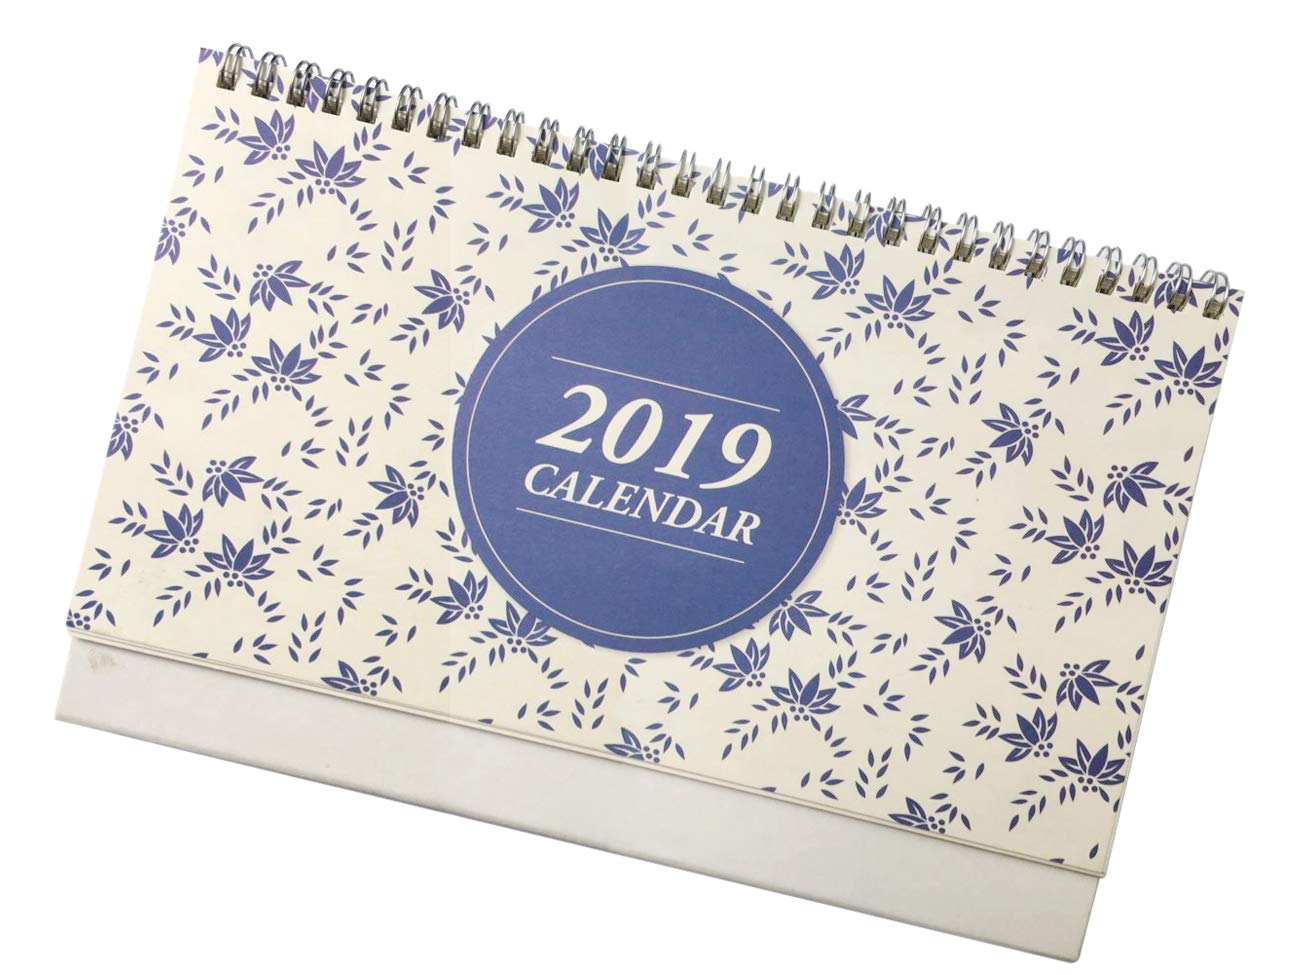 Desk Calendar 2019, October 2018 - December 2019,Twin-Wire Binding,Monthly Planners for Office,School,Family, 10'' x 7''(American Holiday)